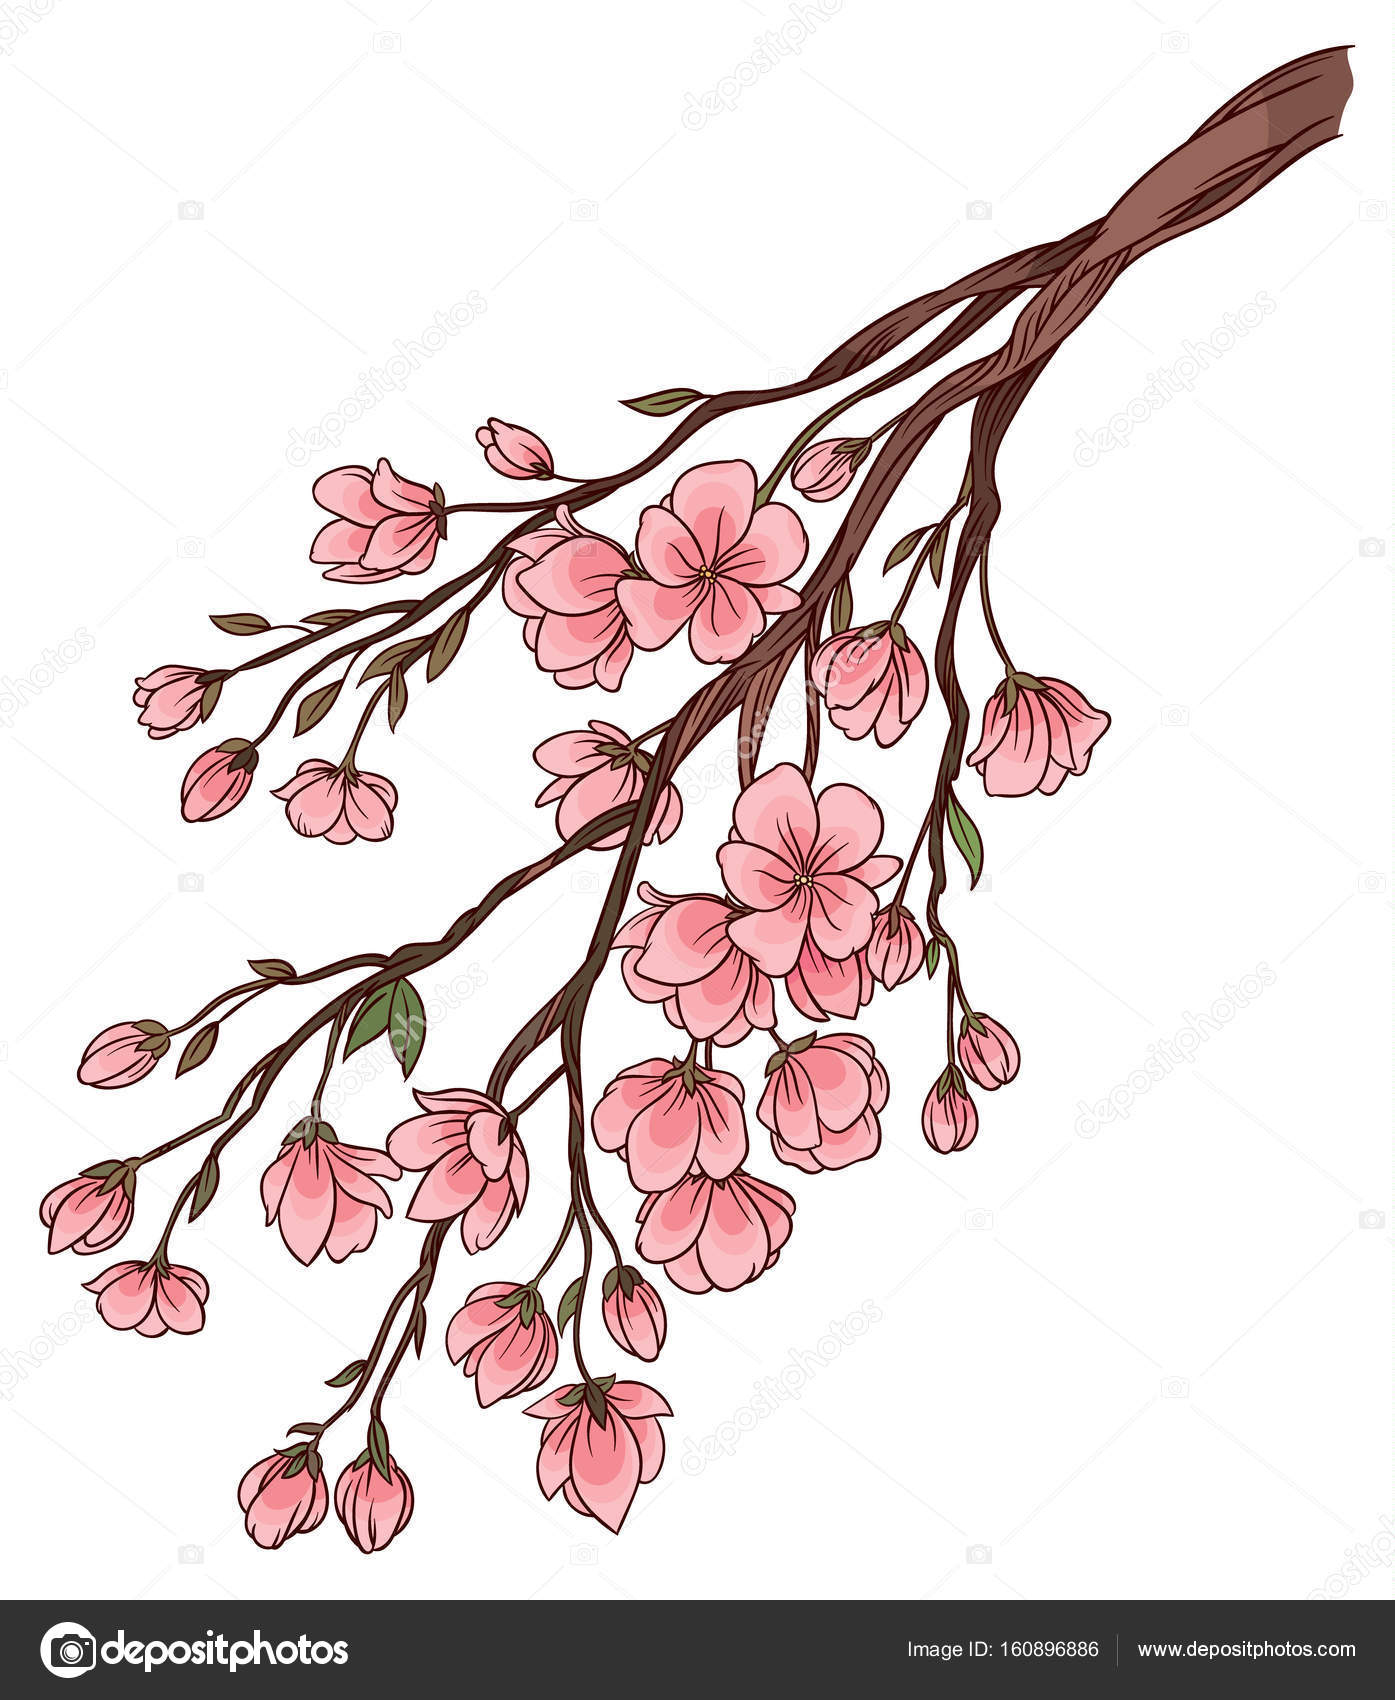 Branch Of Cherry Blossoms With Delicate Pink Flowers Stock